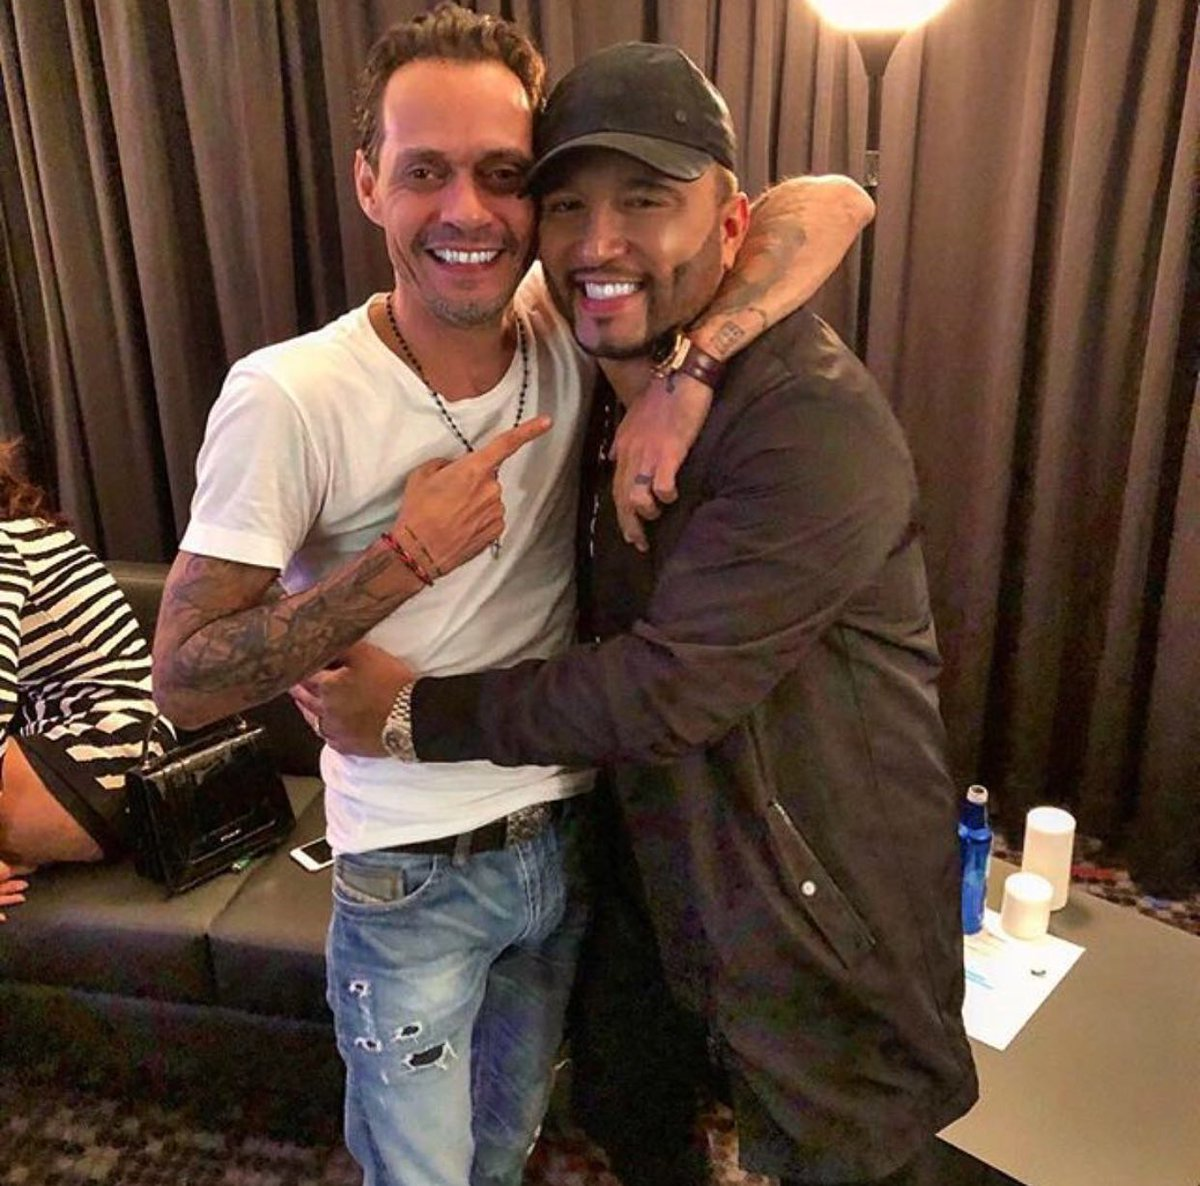 #Repost @AlexSensation  ・・・ Love being part of your tour my brother @marcanthony thanks for the opportunity @magnusmedia mañana para Orlando<br>http://pic.twitter.com/Al6XU3jzPs